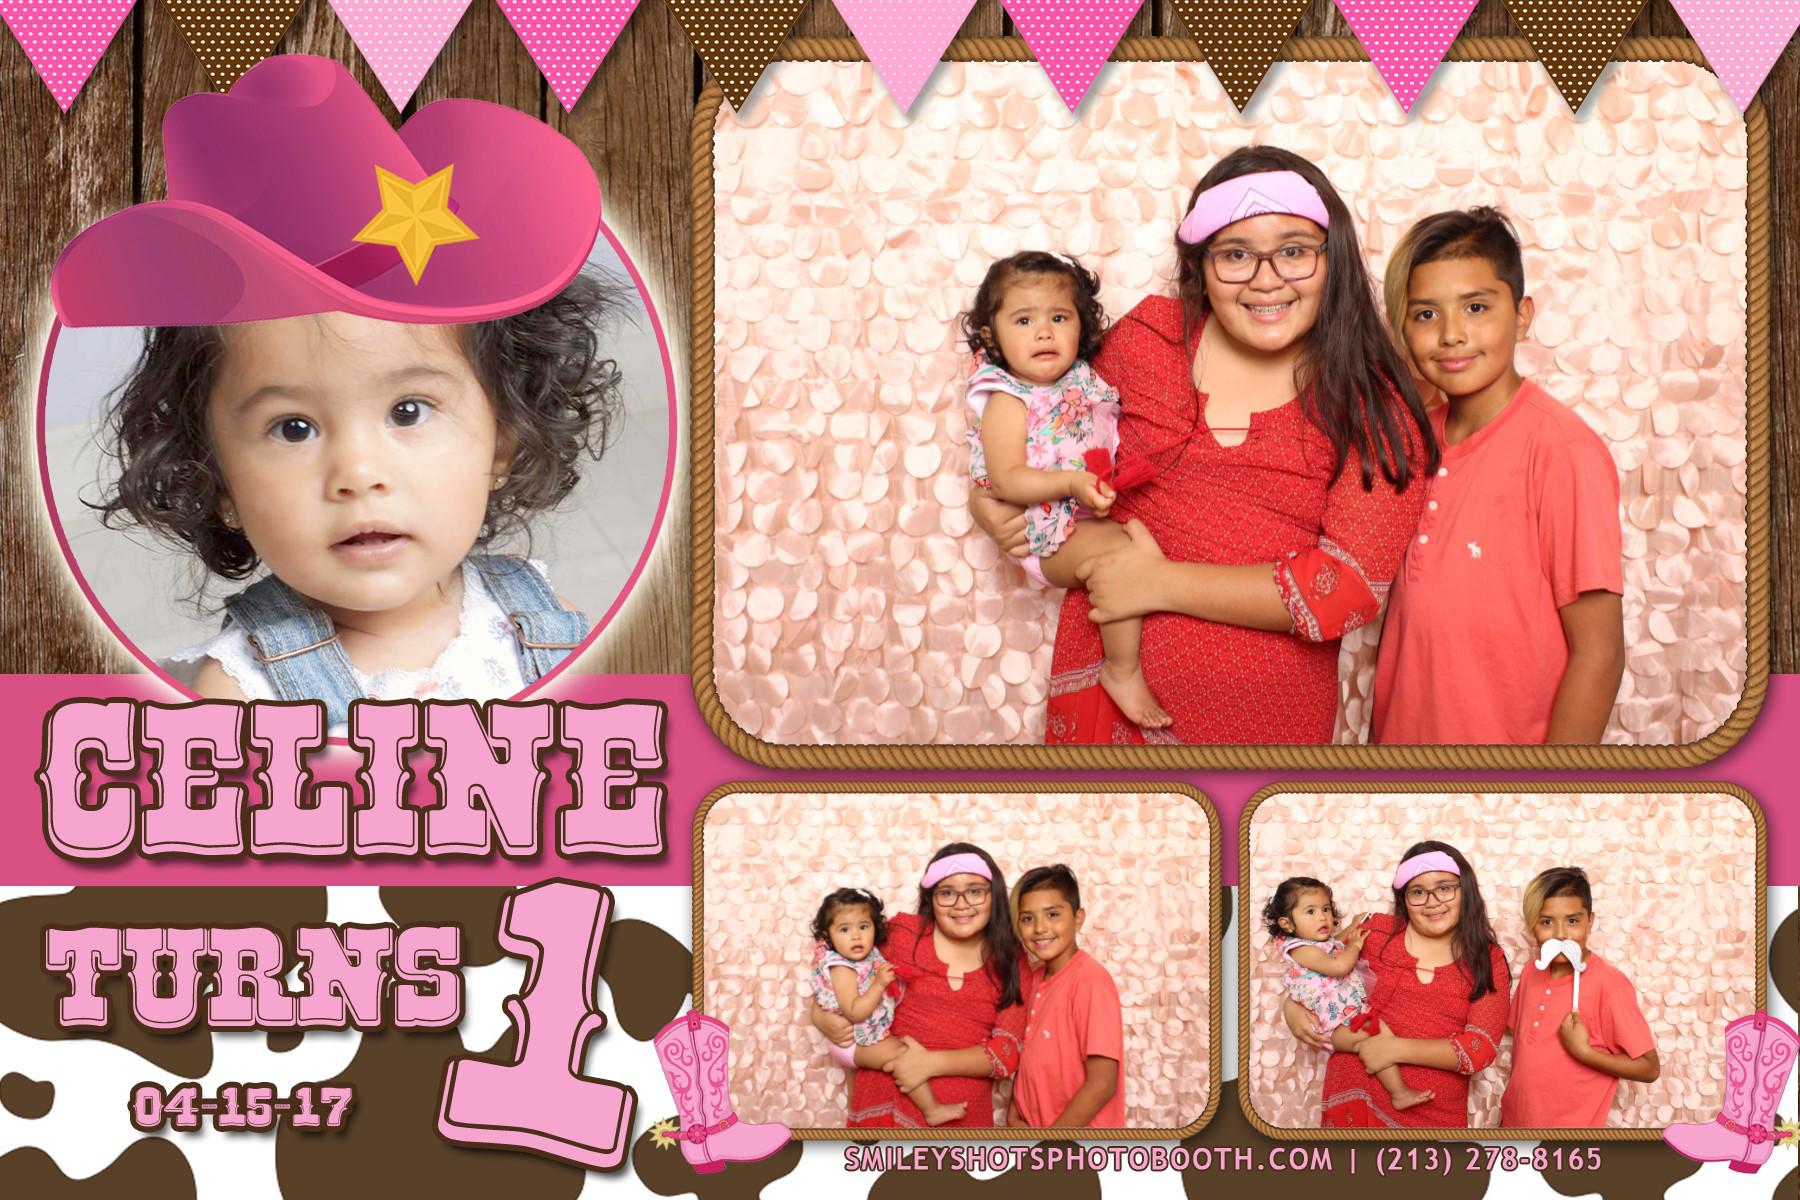 Celine turns 1 Smiley Shots Photo Booth Photobooth (52).png